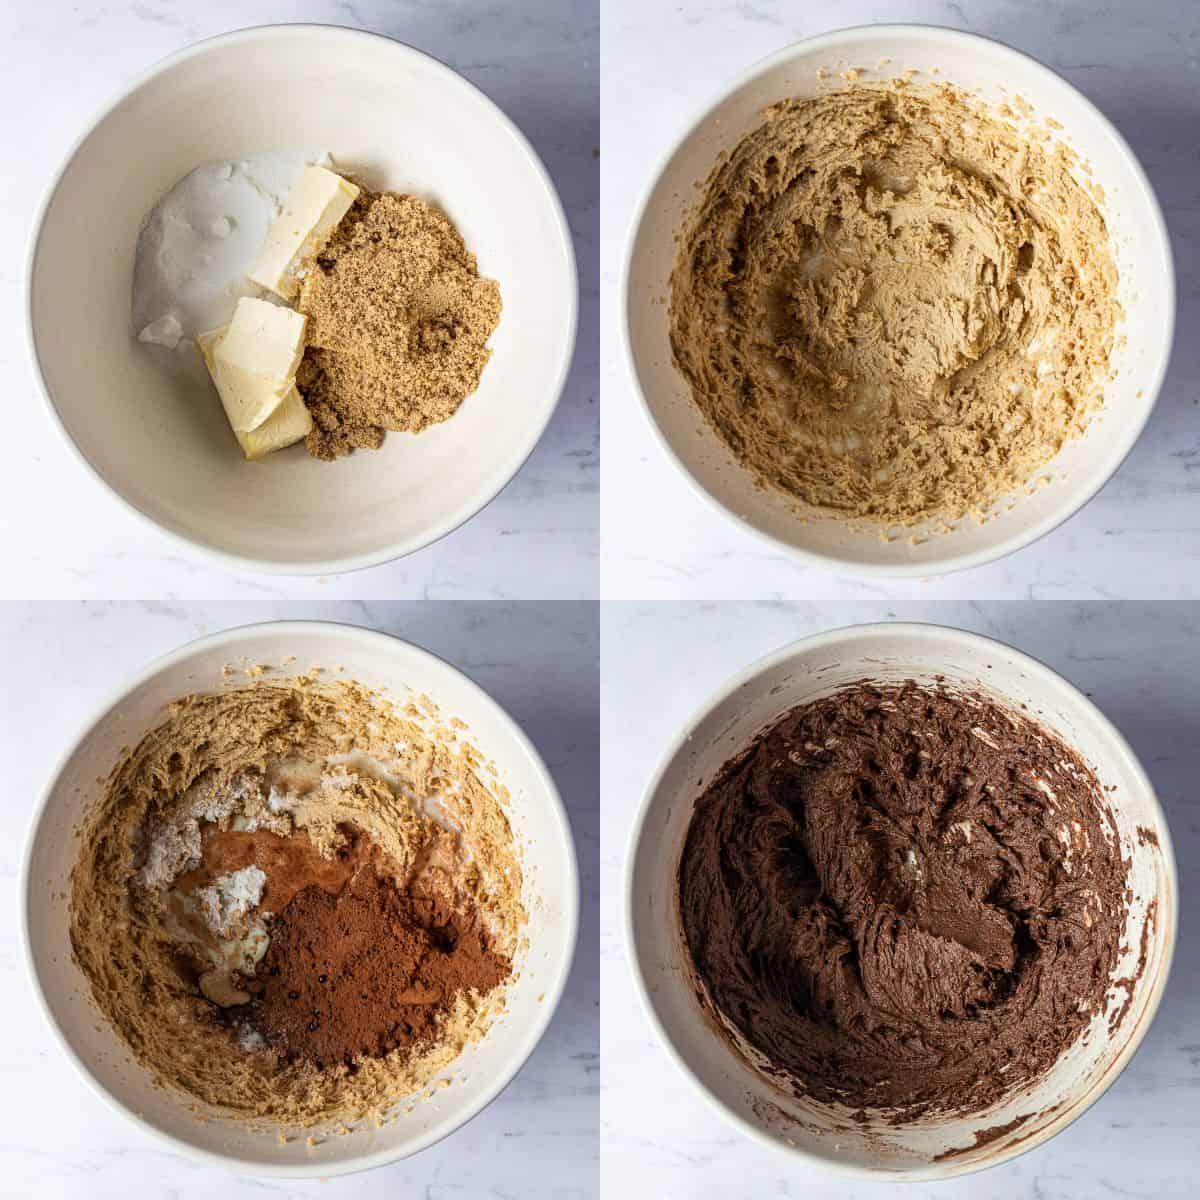 Step 1 - a four image collage of whisking together the butter and sugar and adding the cocoa powder.